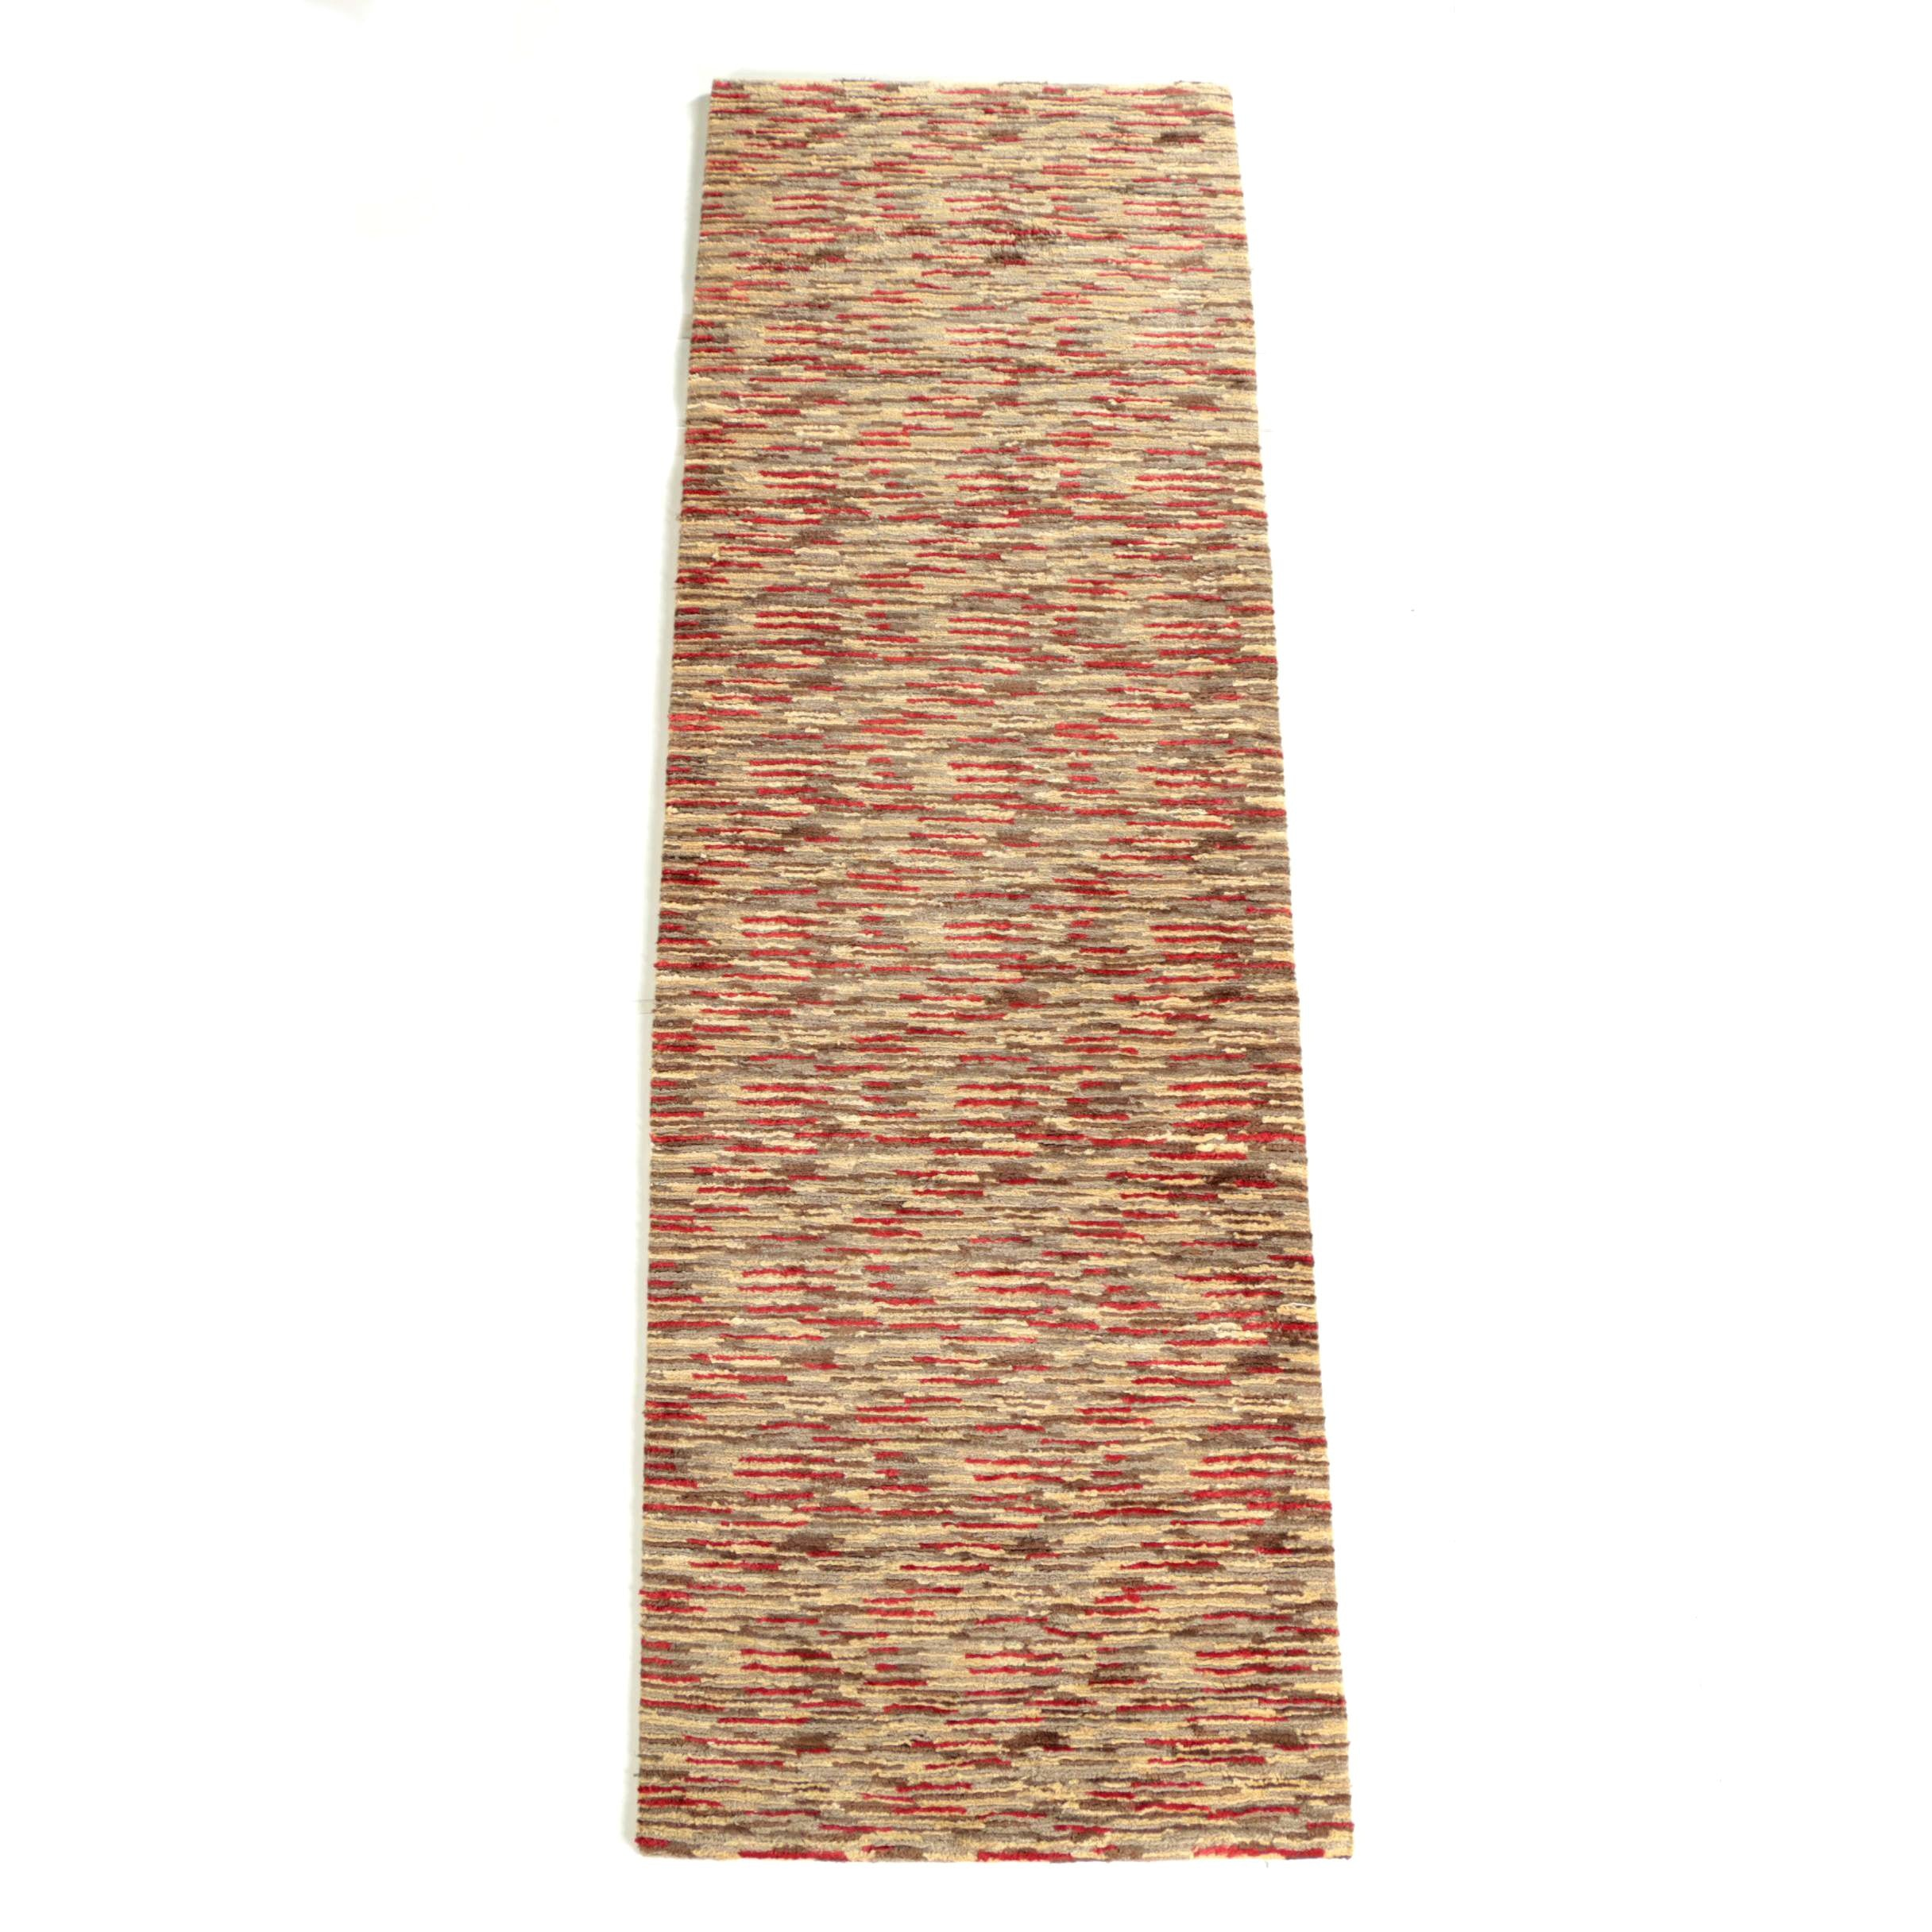 Hand-Knotted Rug Guy Galleriez Contemporary Wool Carpet Runner